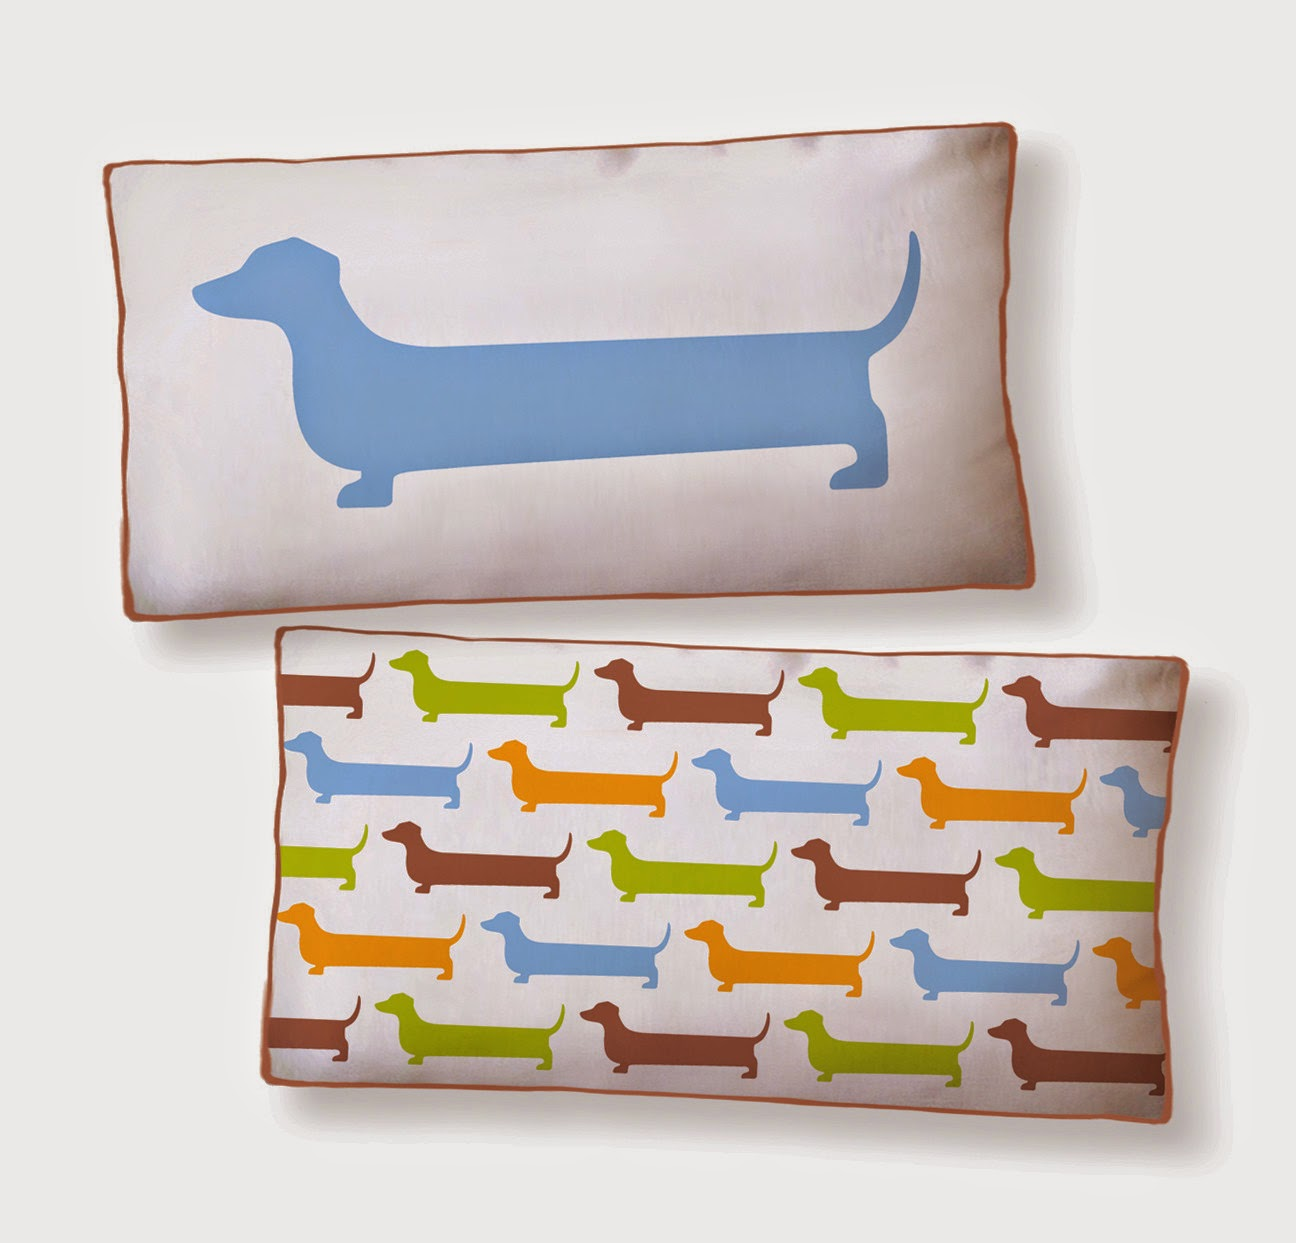 dachshunds and scrabble and other things  'a casarella - dachshunds and scrabble and other things